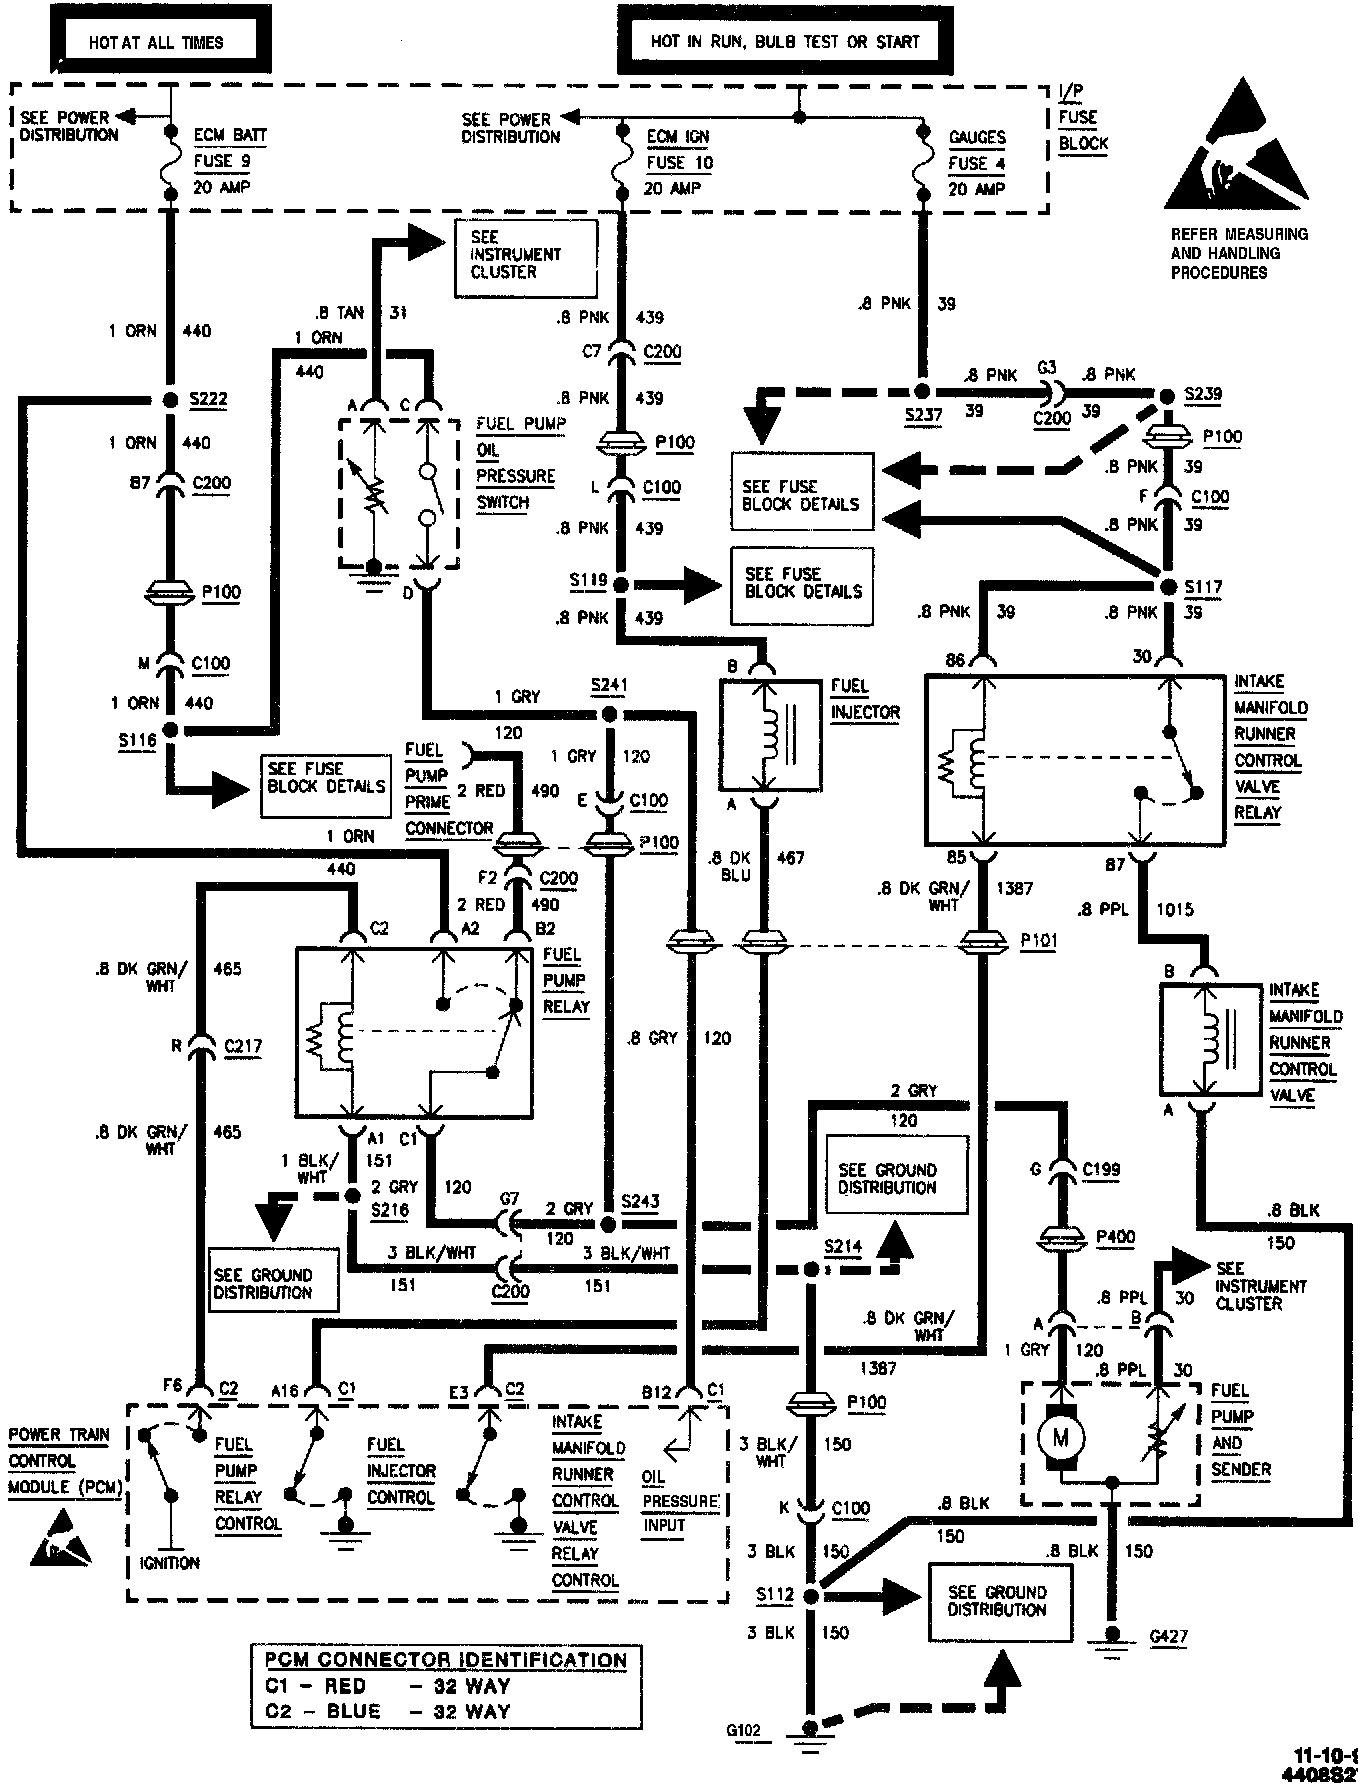 S 10 Truck Wiring Diagram | Wiring Diagram  Chevy S Cpu Wiring Diagram on 96 s10 wiring diagram, 1996 gmc sonoma wiring diagram, chevy s10 2.2l engine diagram, 1996 chevy tbi wiring-diagram, 1996 isuzu hombre wiring diagram, 1996 gmc yukon wiring diagram, 1995 chevy 4x4 wiring diagram, 1996 nissan 240sx wiring diagram, 1996 isuzu trooper wiring diagram, 1999 chevrolet wiring diagram, 1996 chrysler sebring wiring diagram, 2003 chevy blazer radio wiring diagram, 1996 honda odyssey wiring diagram, 1996 jeep grand cherokee wiring diagram, 1996 nissan sentra wiring diagram, 1996 ford f-250 wiring diagram, 1996 toyota t100 wiring diagram, s10 fuel pump wiring diagram, 1999 chevy blazer vacuum hose diagram, 1999 chevy suburban fuse diagram,